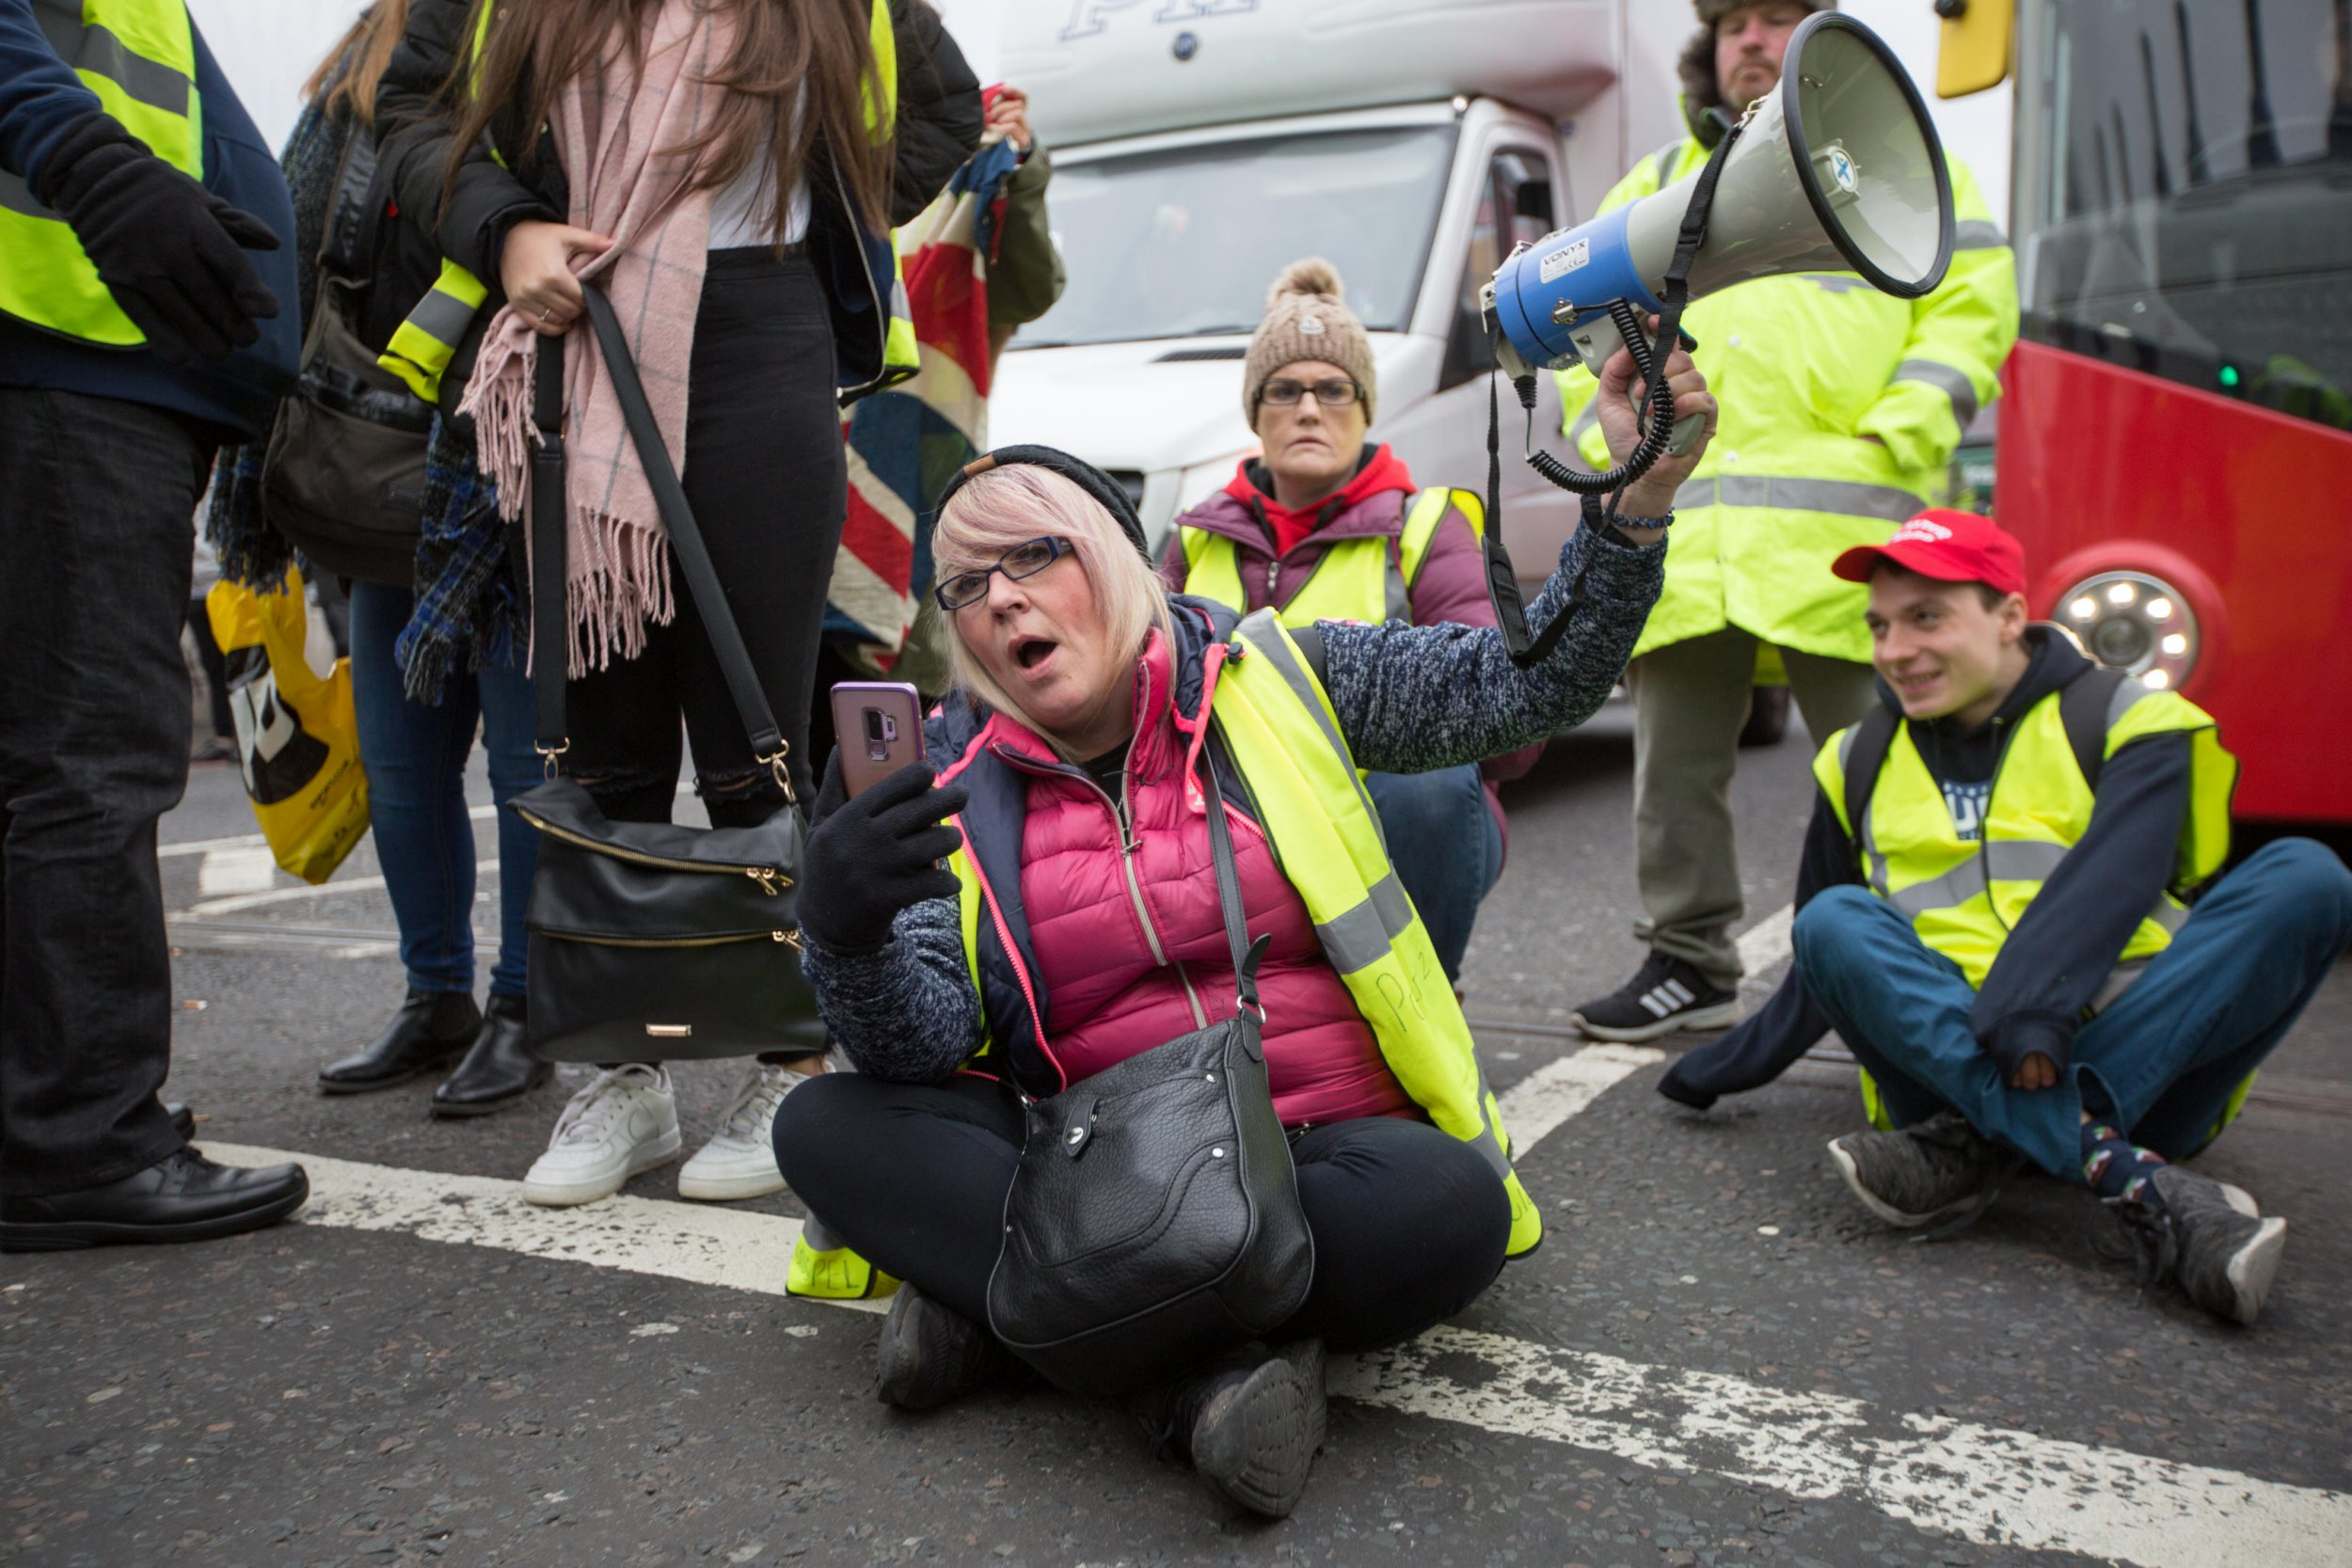 Alamy Live News. R8AJMD London, UK. 14th December, 2018. Pro Brexit Protesters block Wesminster Bridge and march to Parliament wearing hi-vis yellow vests reminscent of the recent French protests Credit: George Cracknell Wright/Alamy Live News This is an Alamy Live News image and may not be part of your current Alamy deal . If you are unsure, please contact our sales team to check.